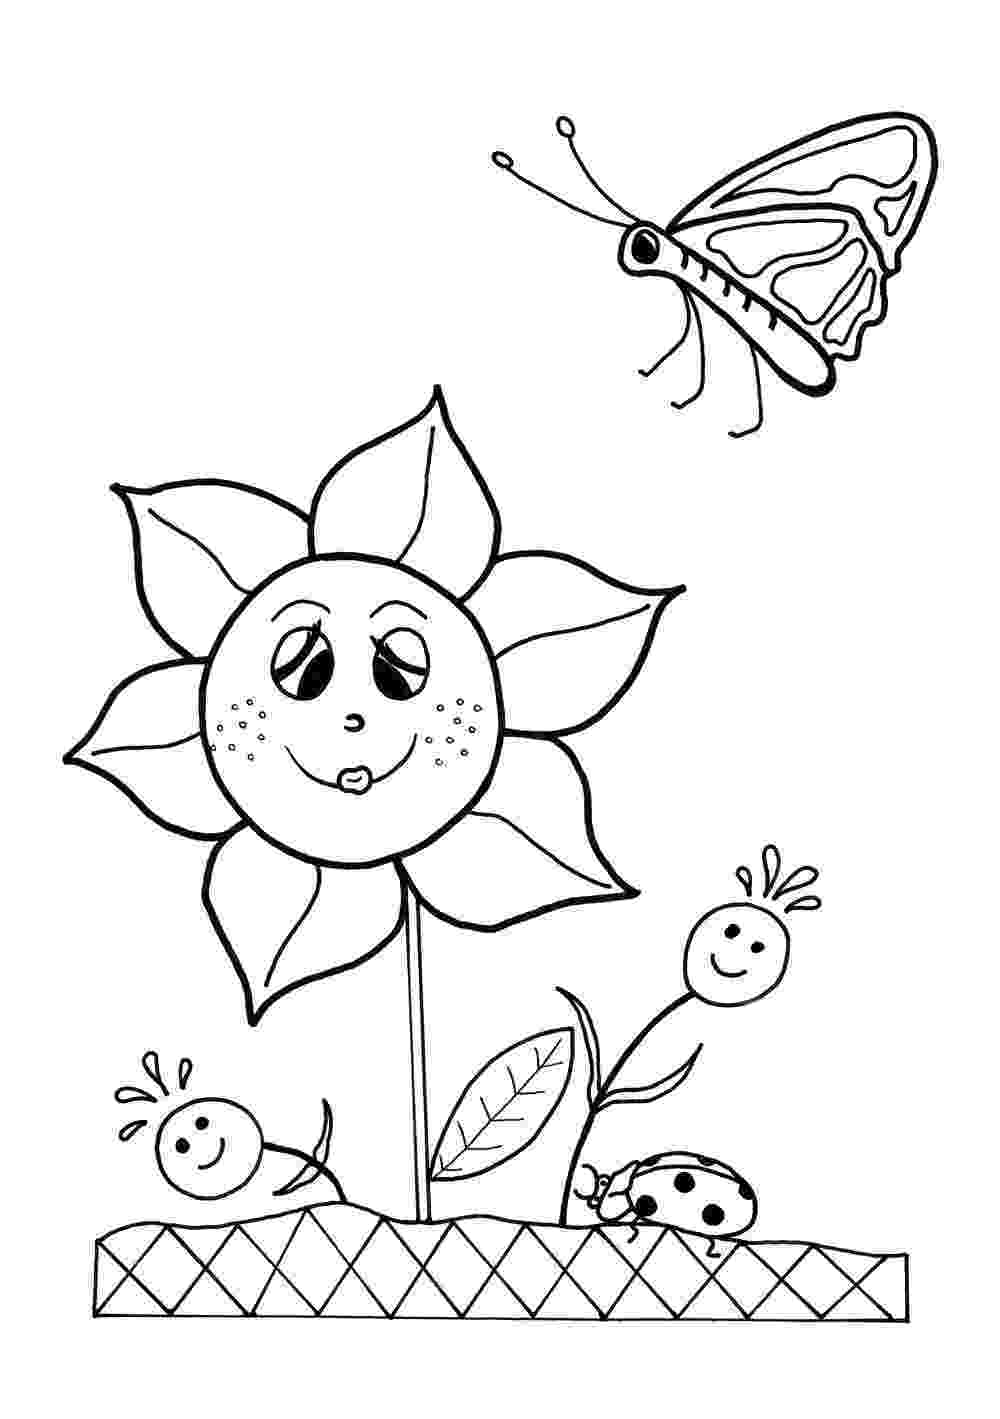 spring flowers coloring pages to print dancing flowers spring coloring sheet allfreekidscraftscom print pages spring to flowers coloring